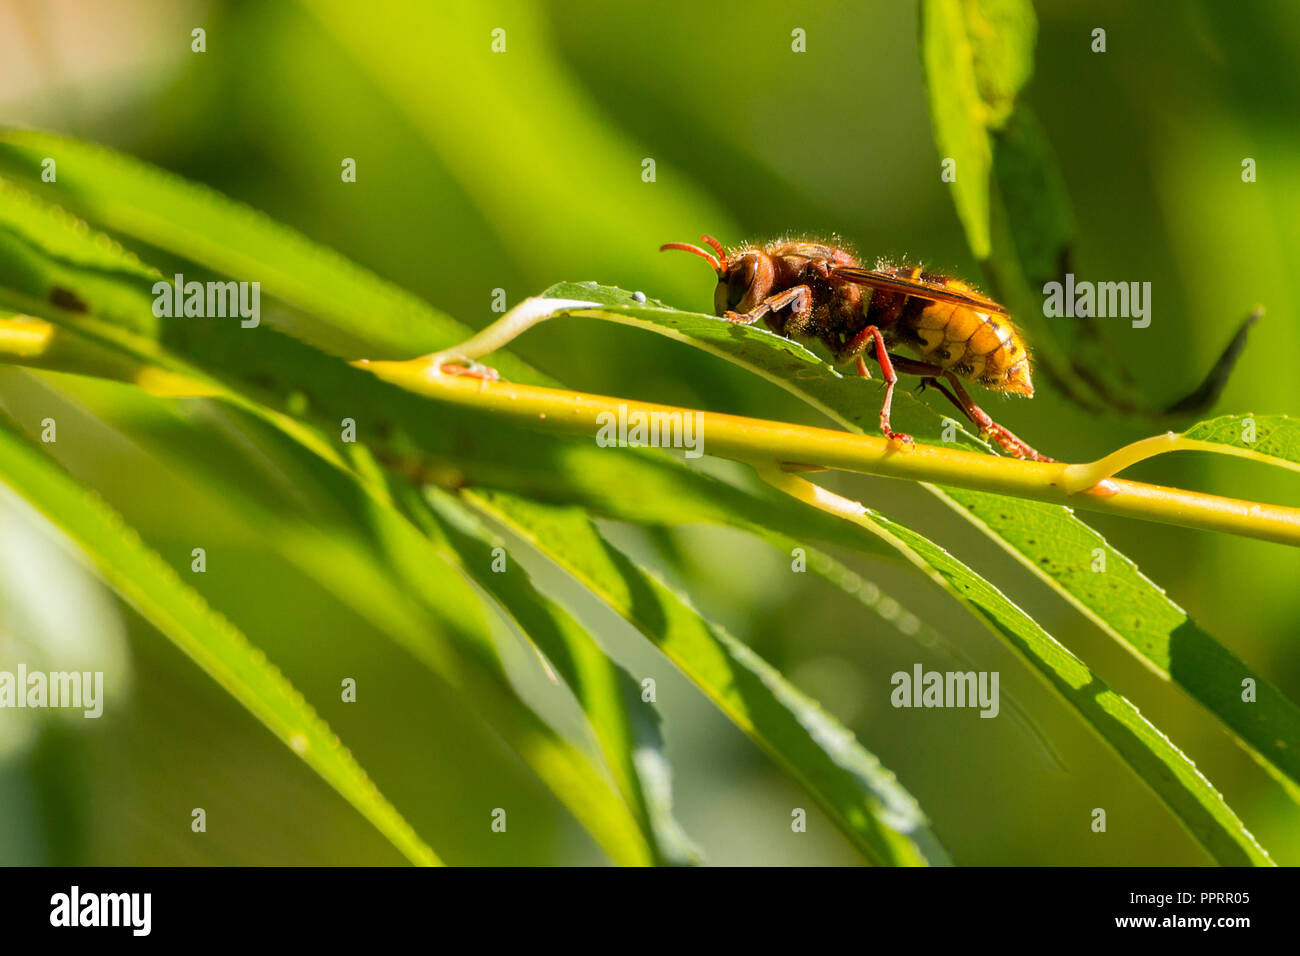 Hornet (Vespa crabro) Britains largest wasp with brown and dull yellow colouring. Cleaning up after feeding on ivy flower heads residue nearby. - Stock Image